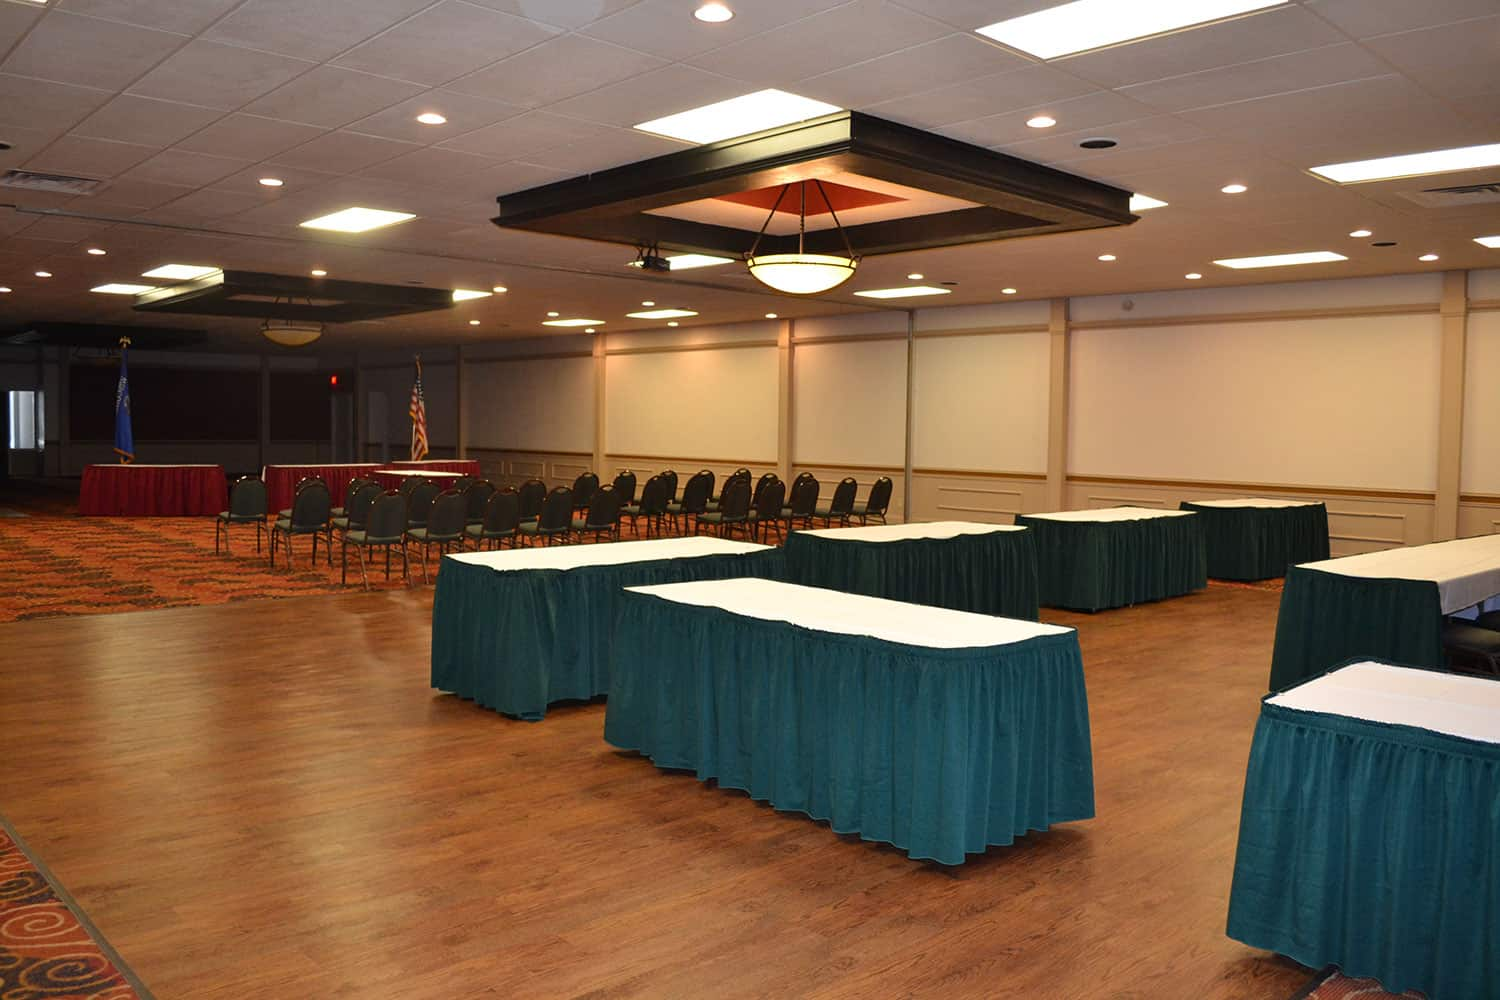 Does Your Company Need More Elbow Room for Meetings?